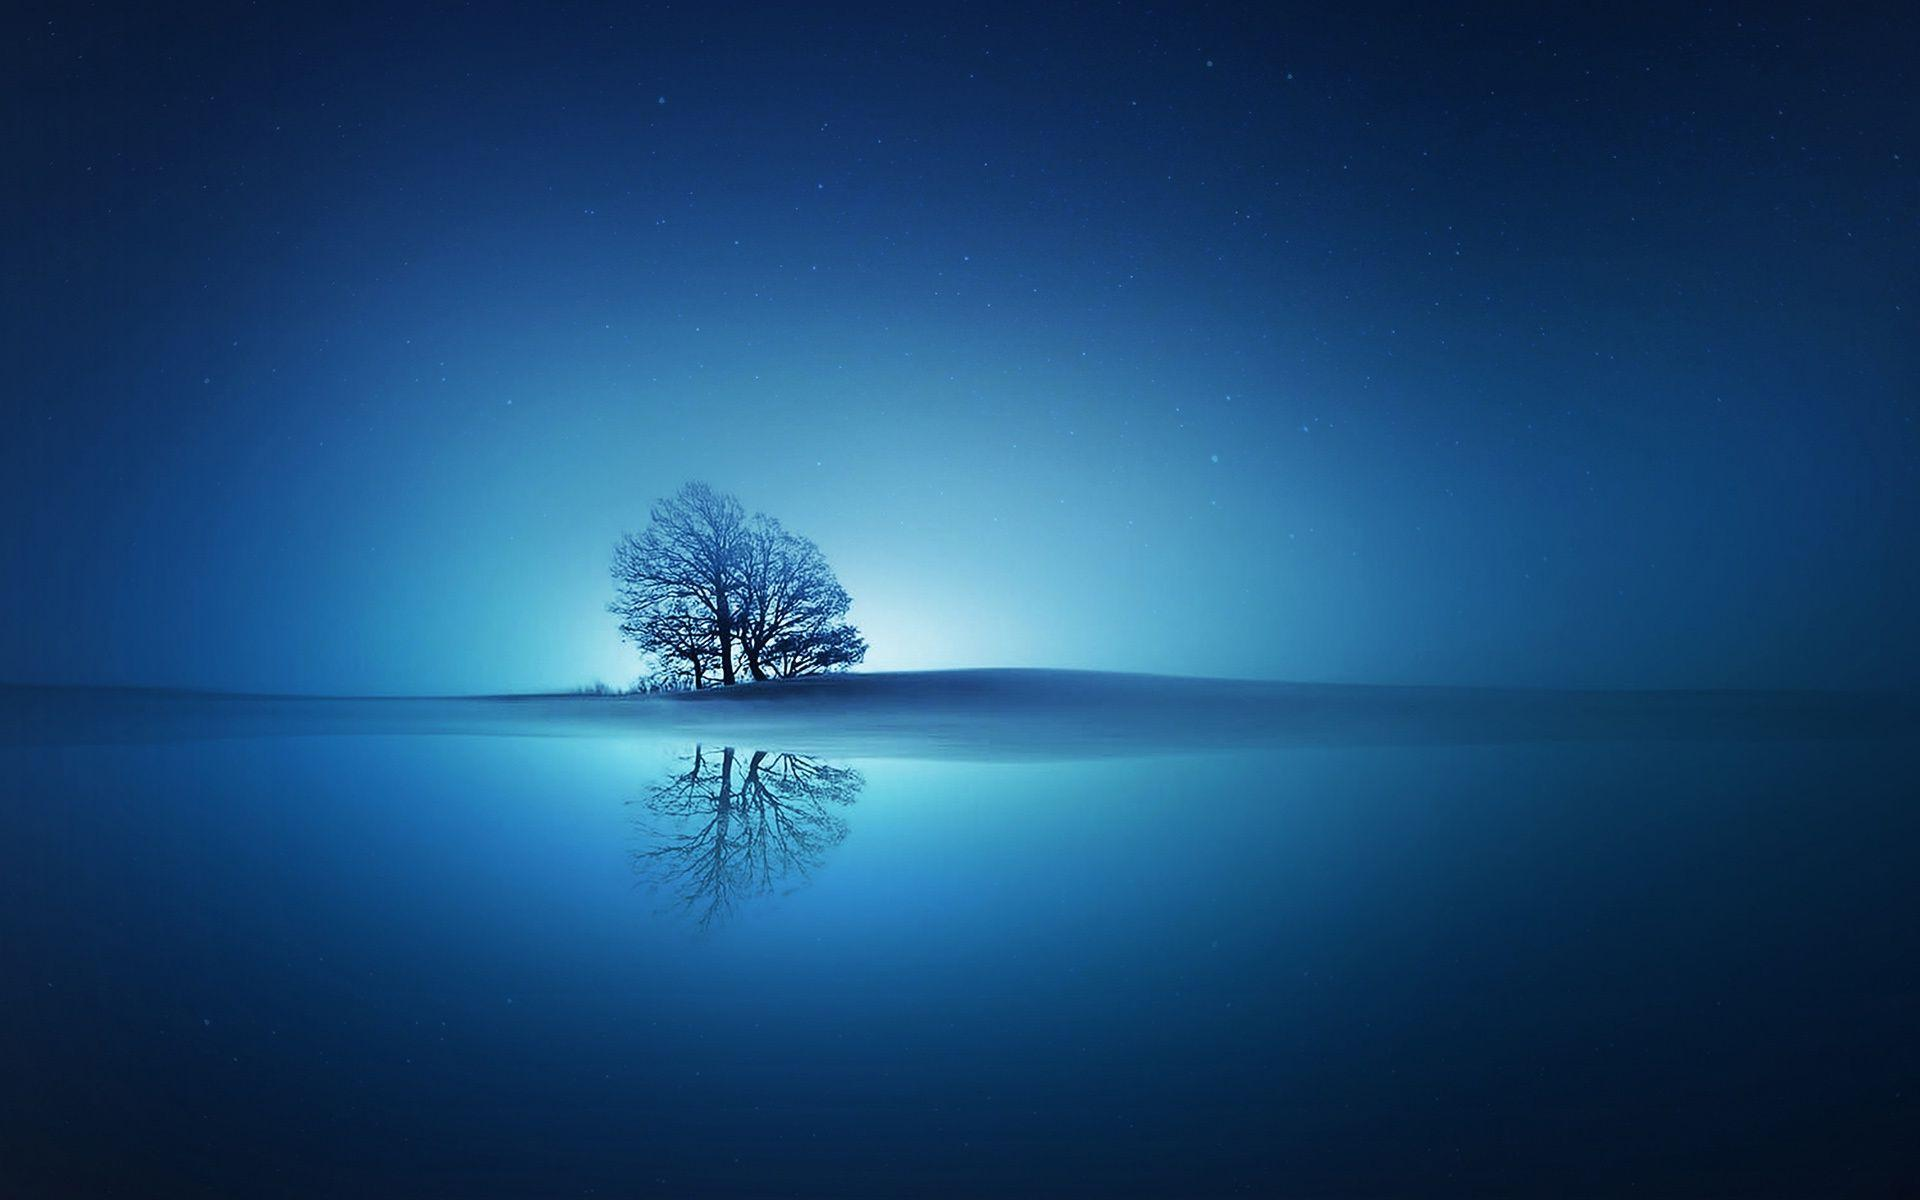 Cute Baby Face Wallpaper Hd Tree In The Blue Sunset Wallpaper Download Free 148983